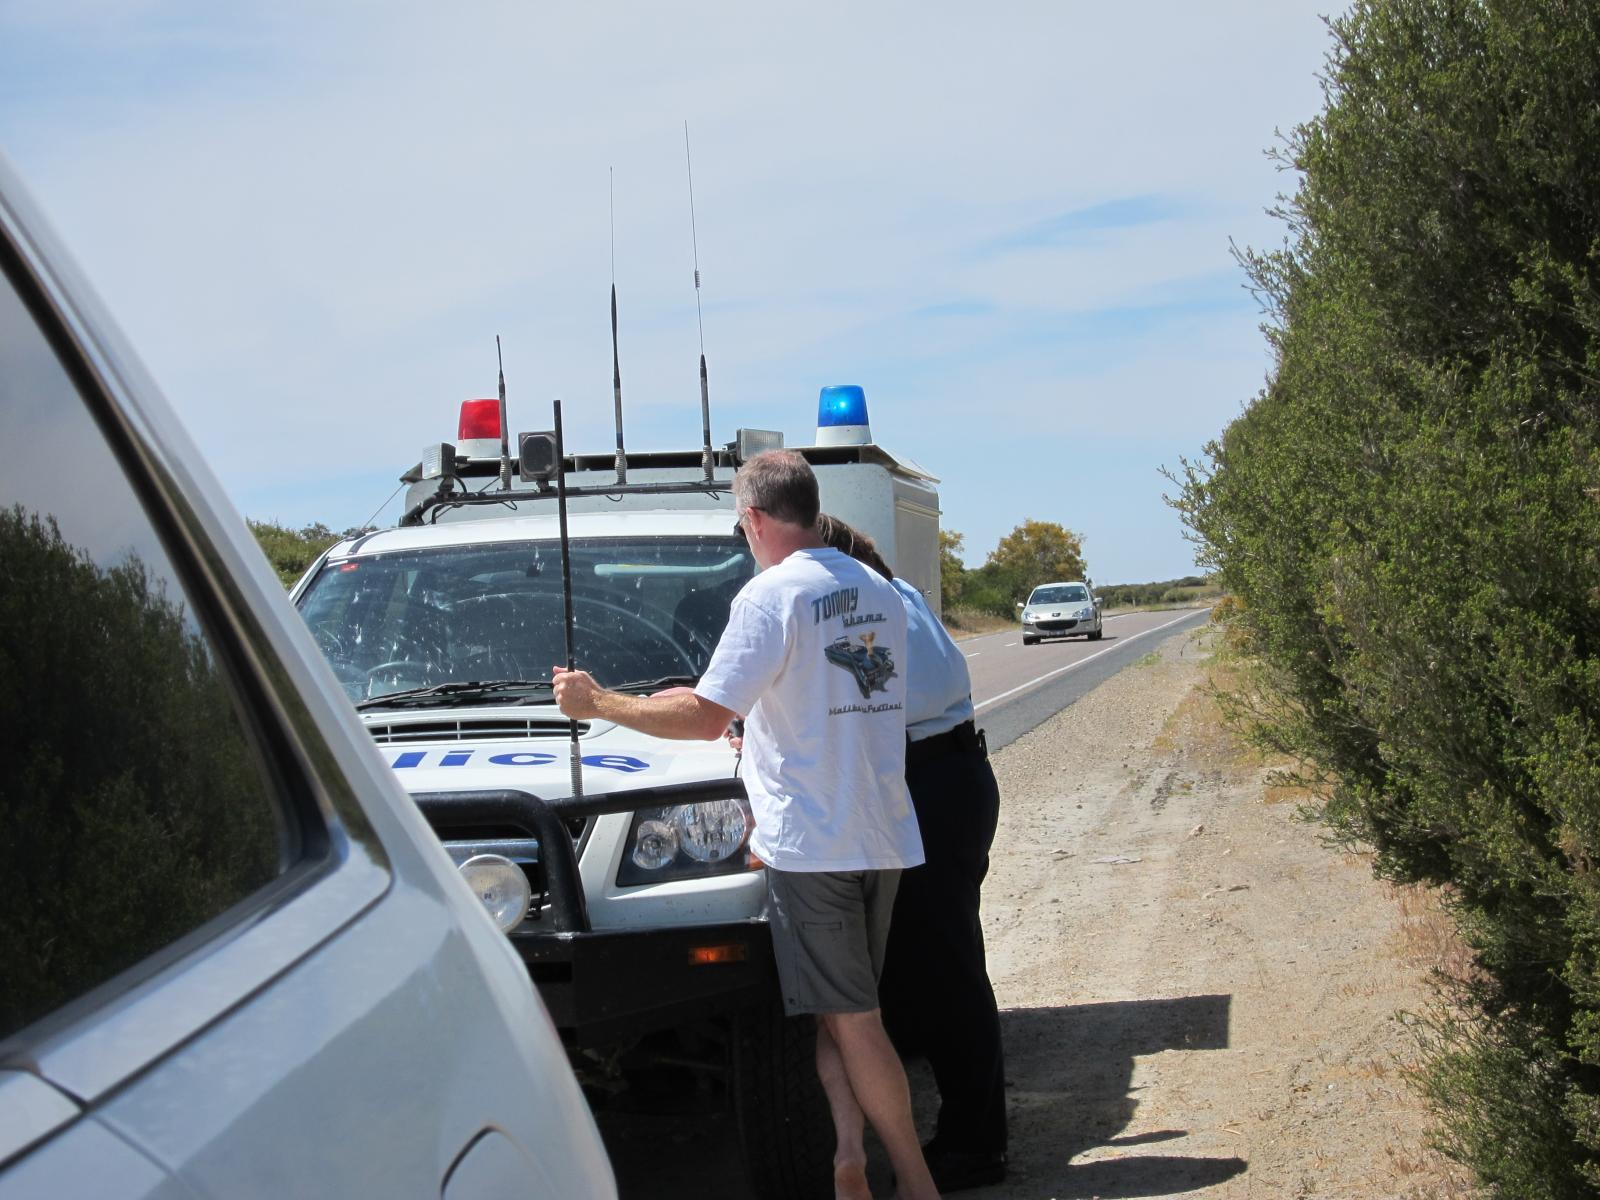 Doin my best to talk my way out of a fine.... South Australian police lady wasn't buying it, was worth a shot.....